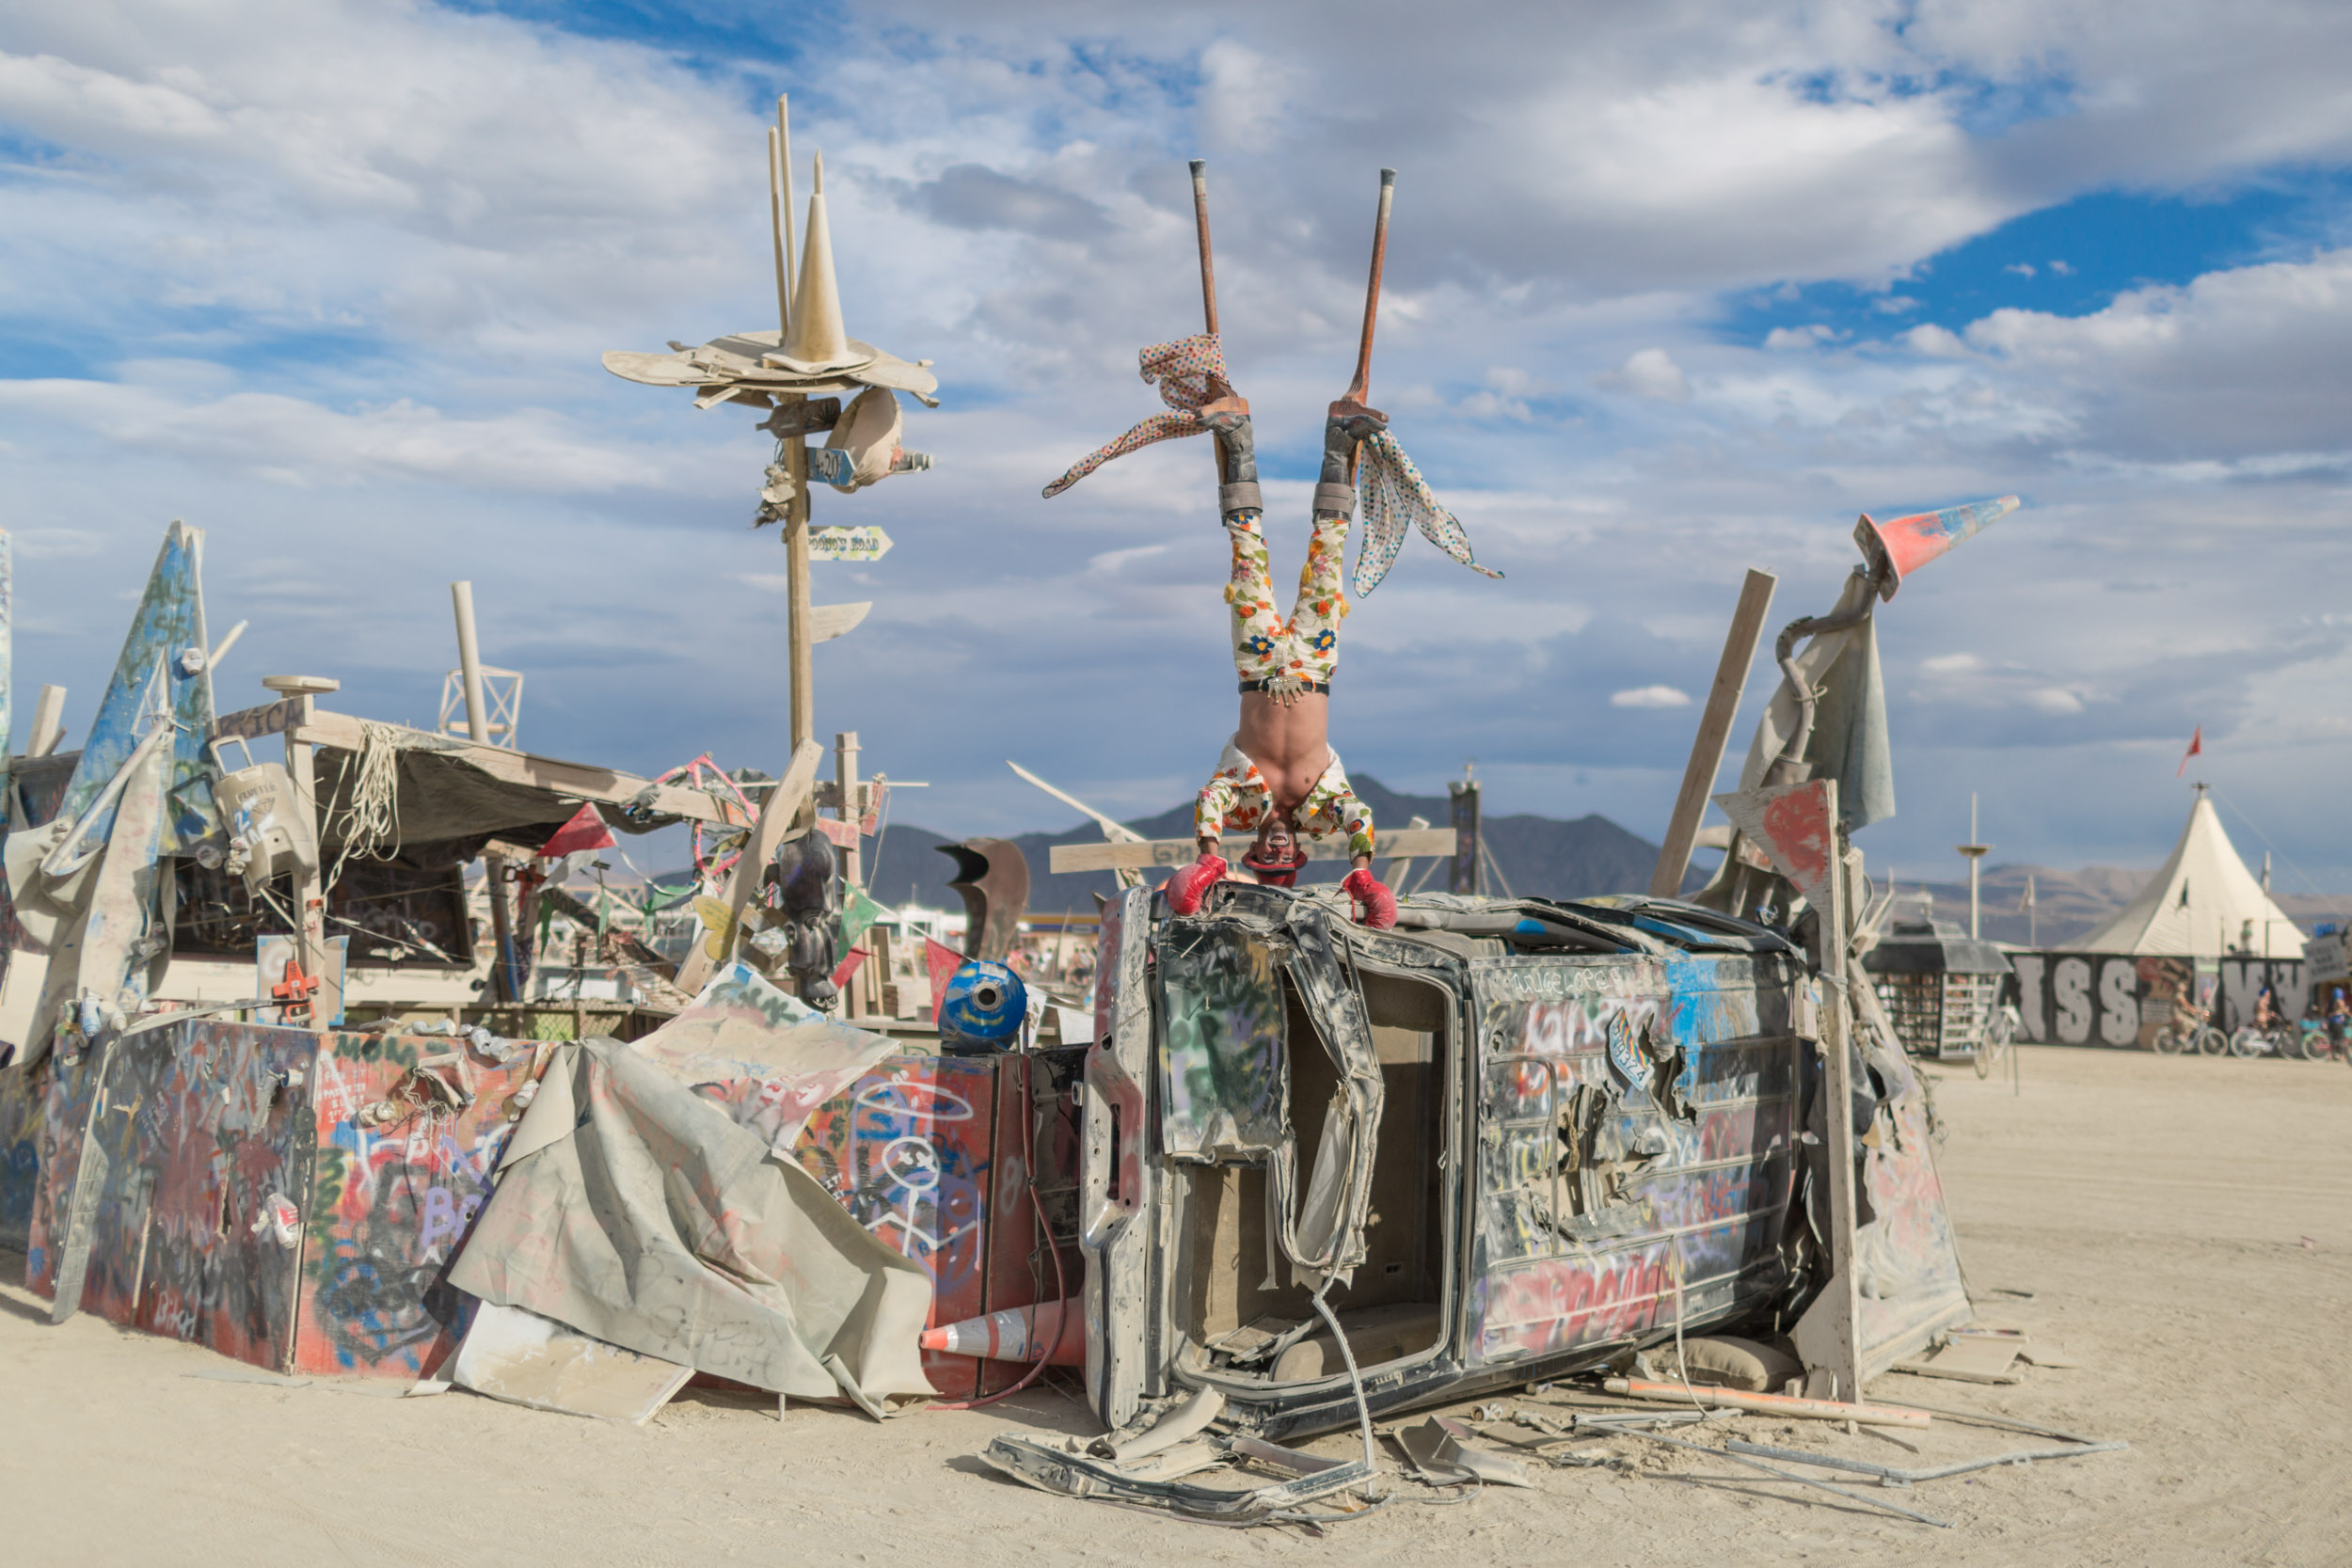 20160903_BurningMan16_7U6A9339